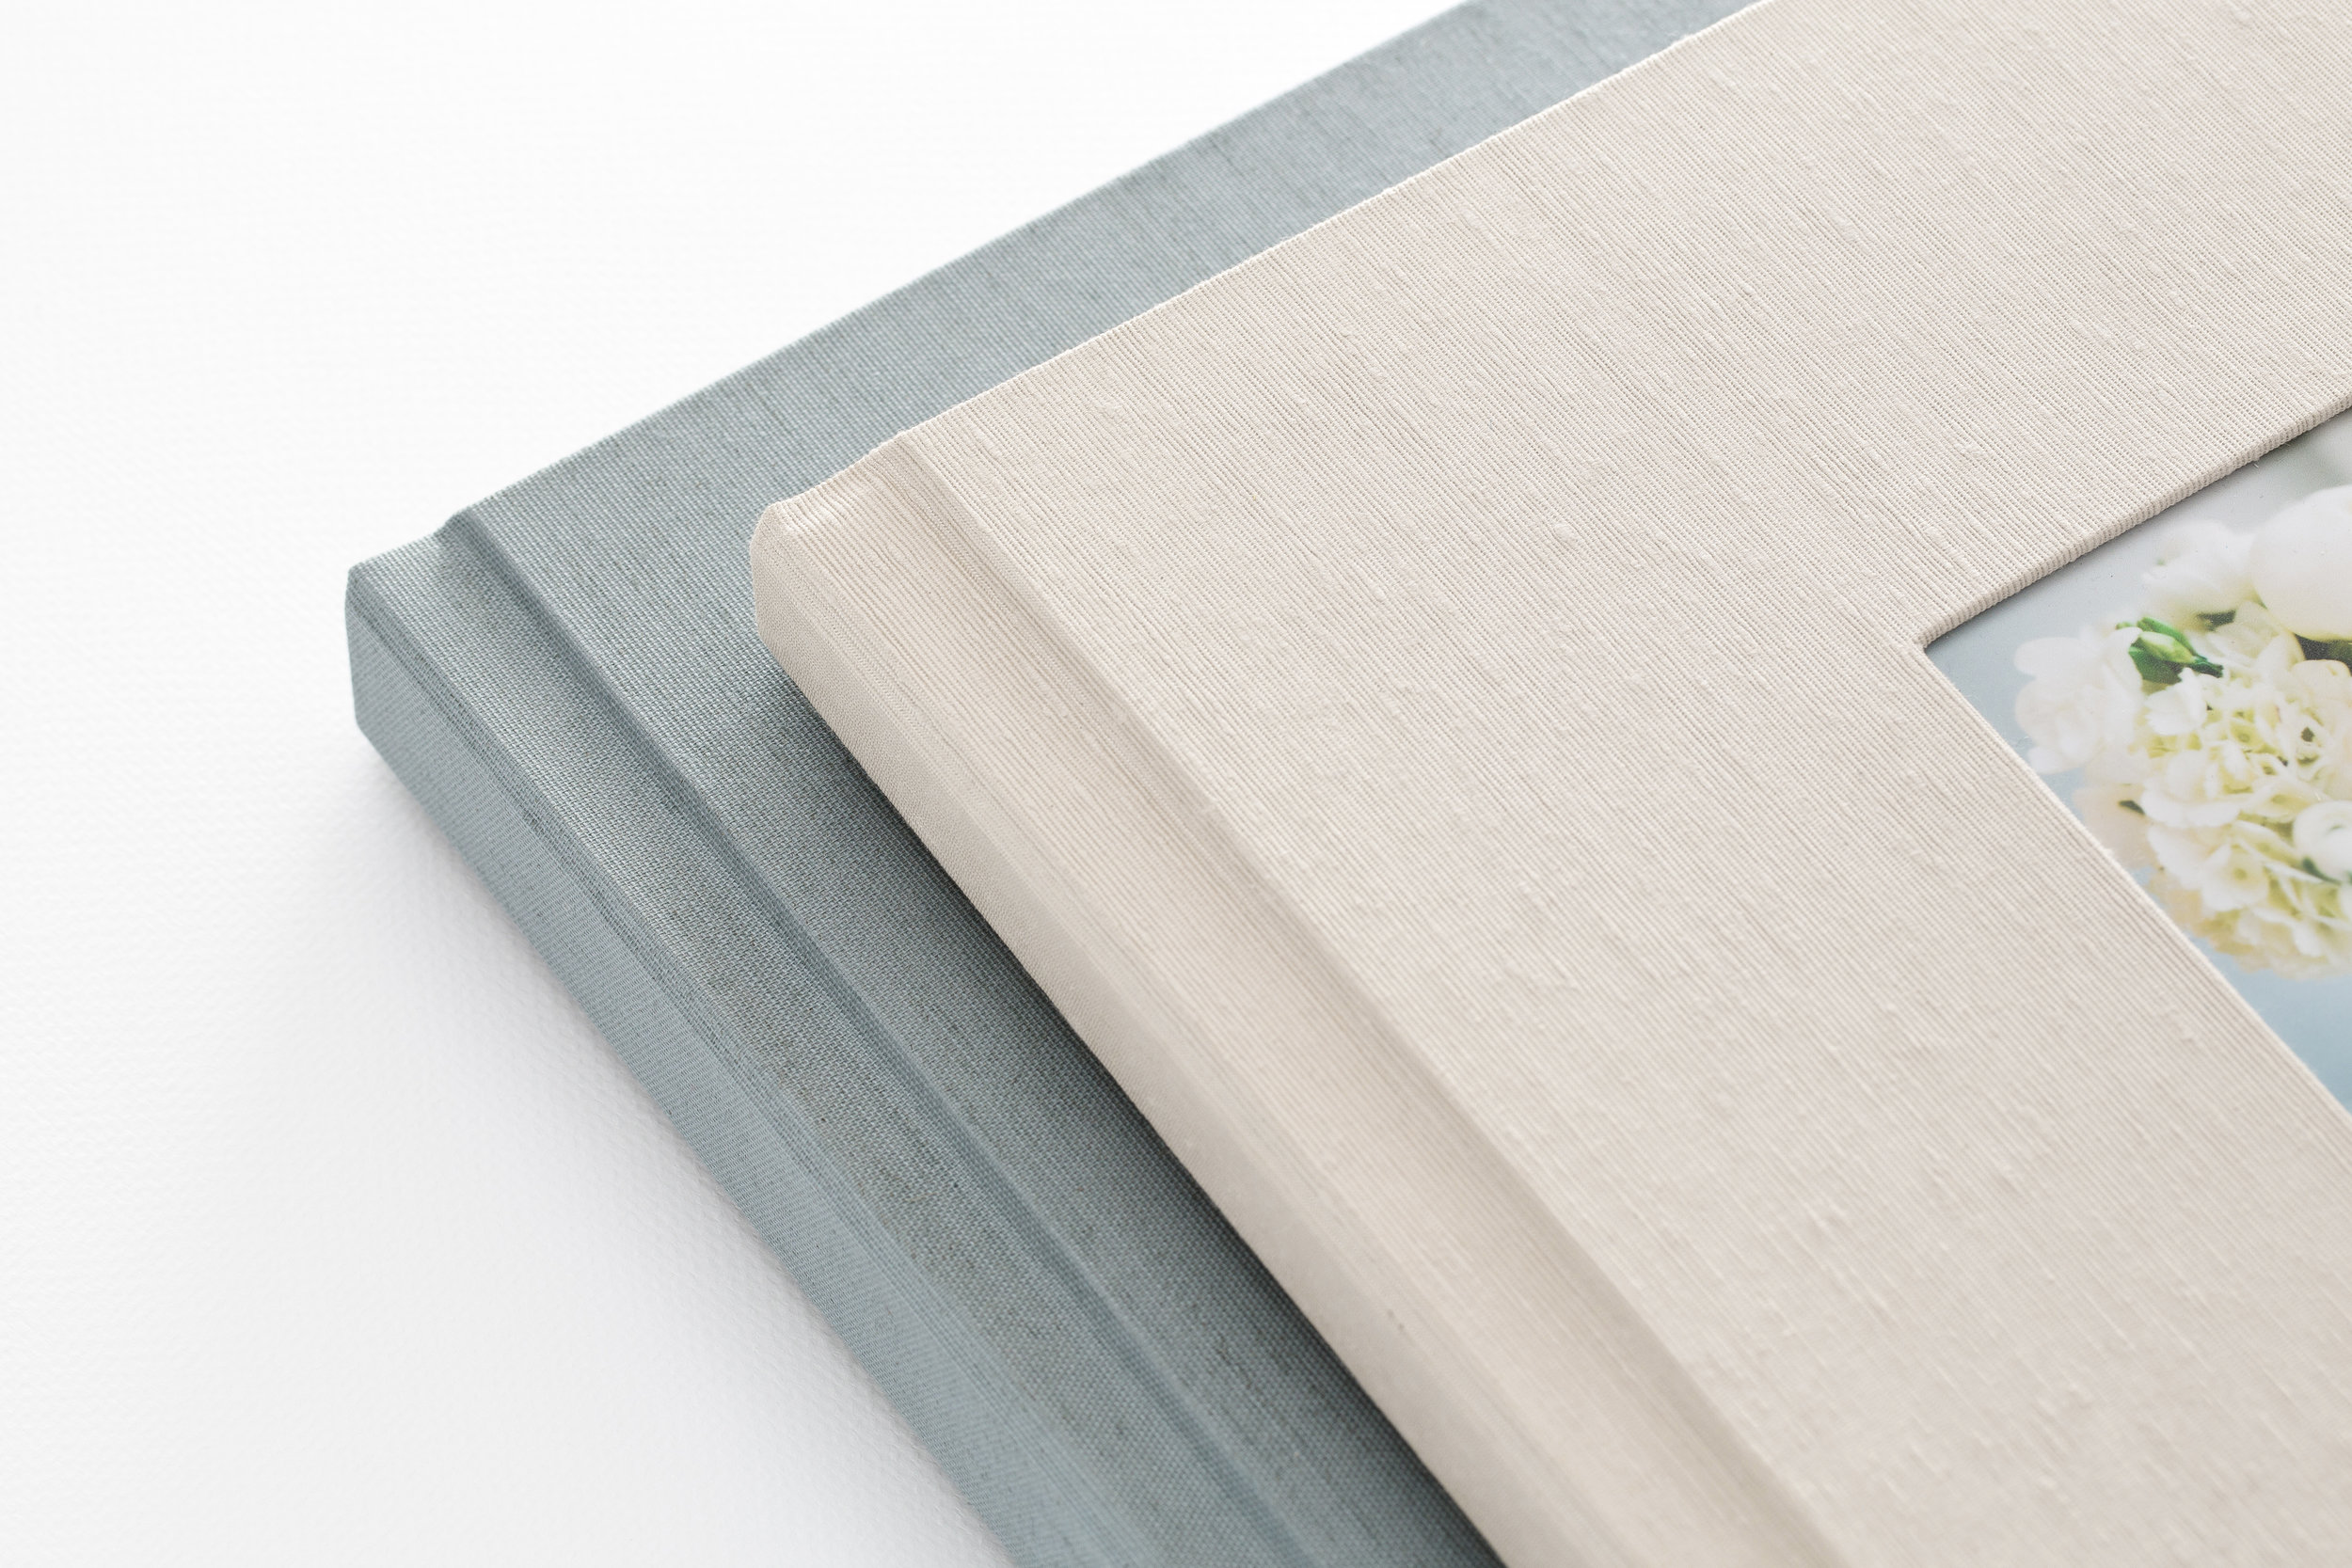 Fabric - Create an elegant heirloom album with one of our luxe linens or Japanese silks. Choose from a premium selection of rich colors and textures.